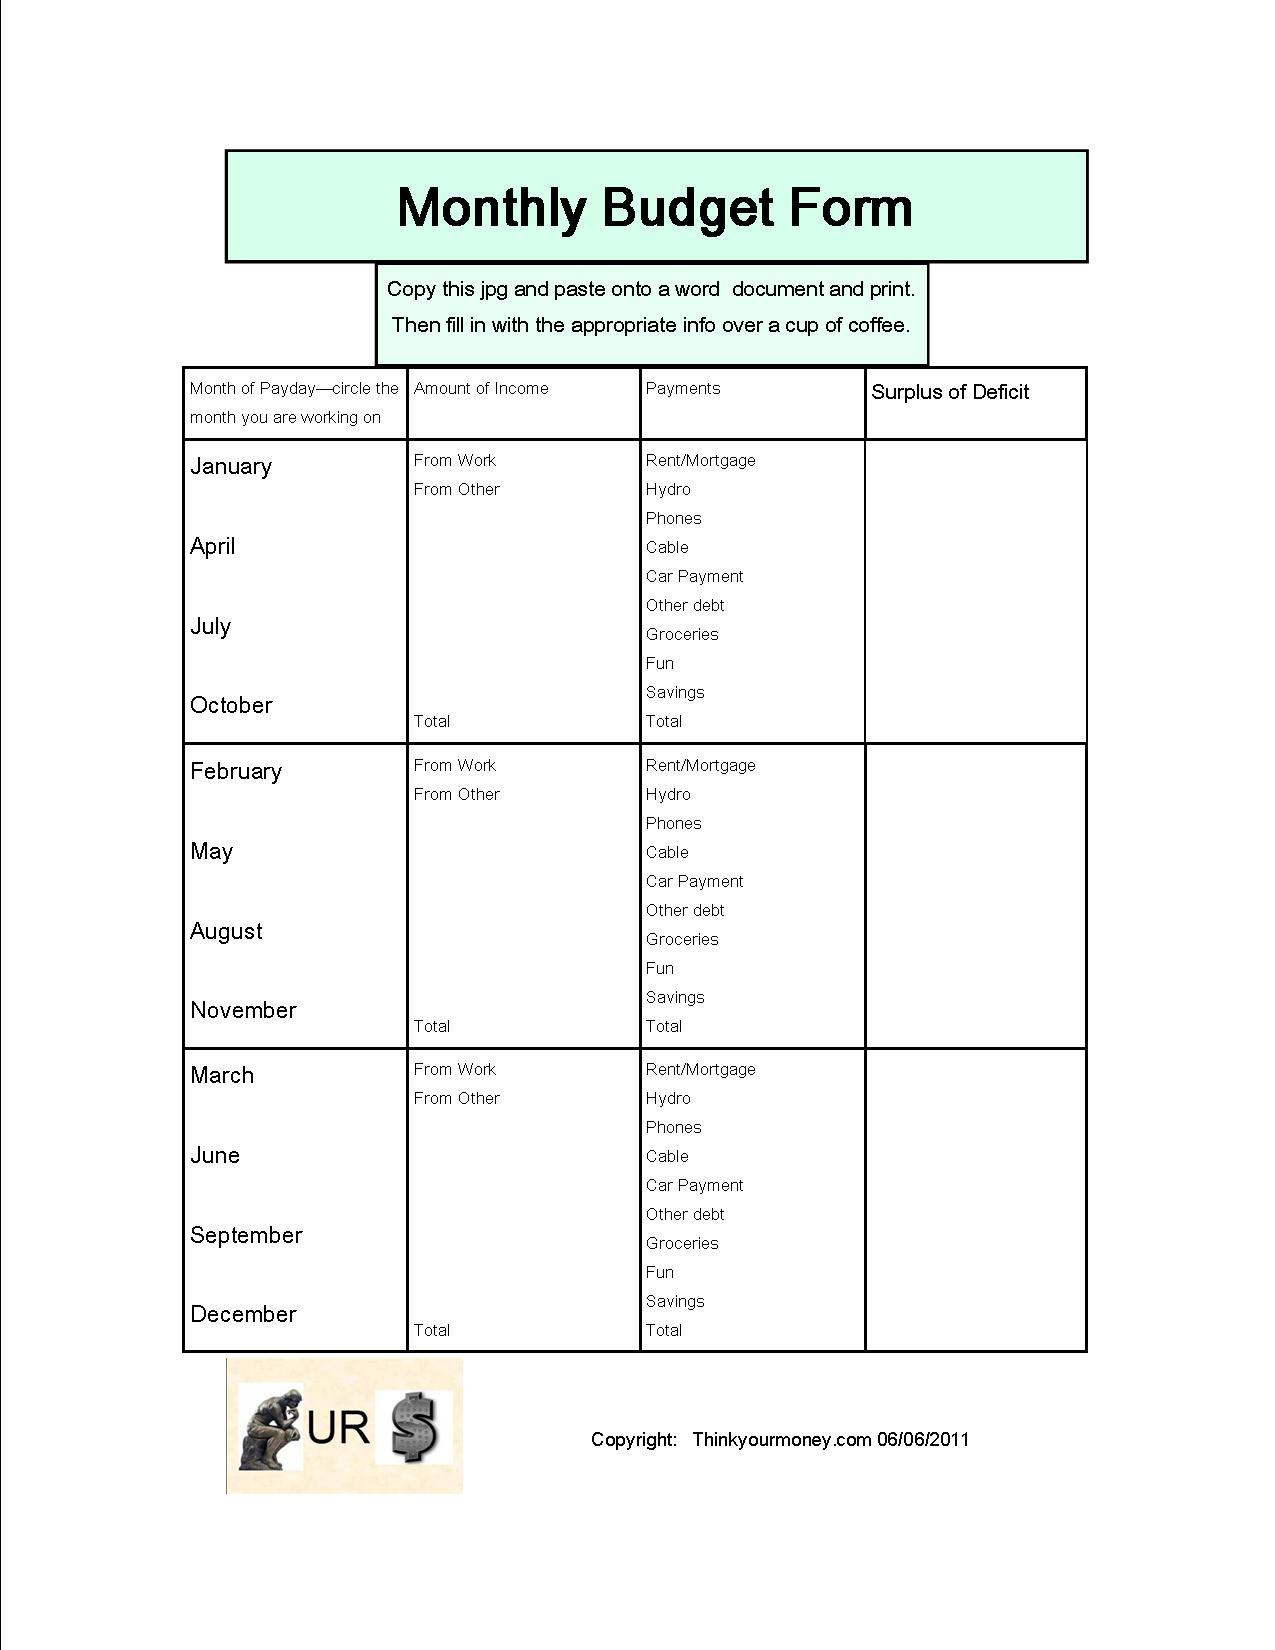 How To Make A Home Budget Spreadsheet Pertaining To Monthly Budget Spreadsheet